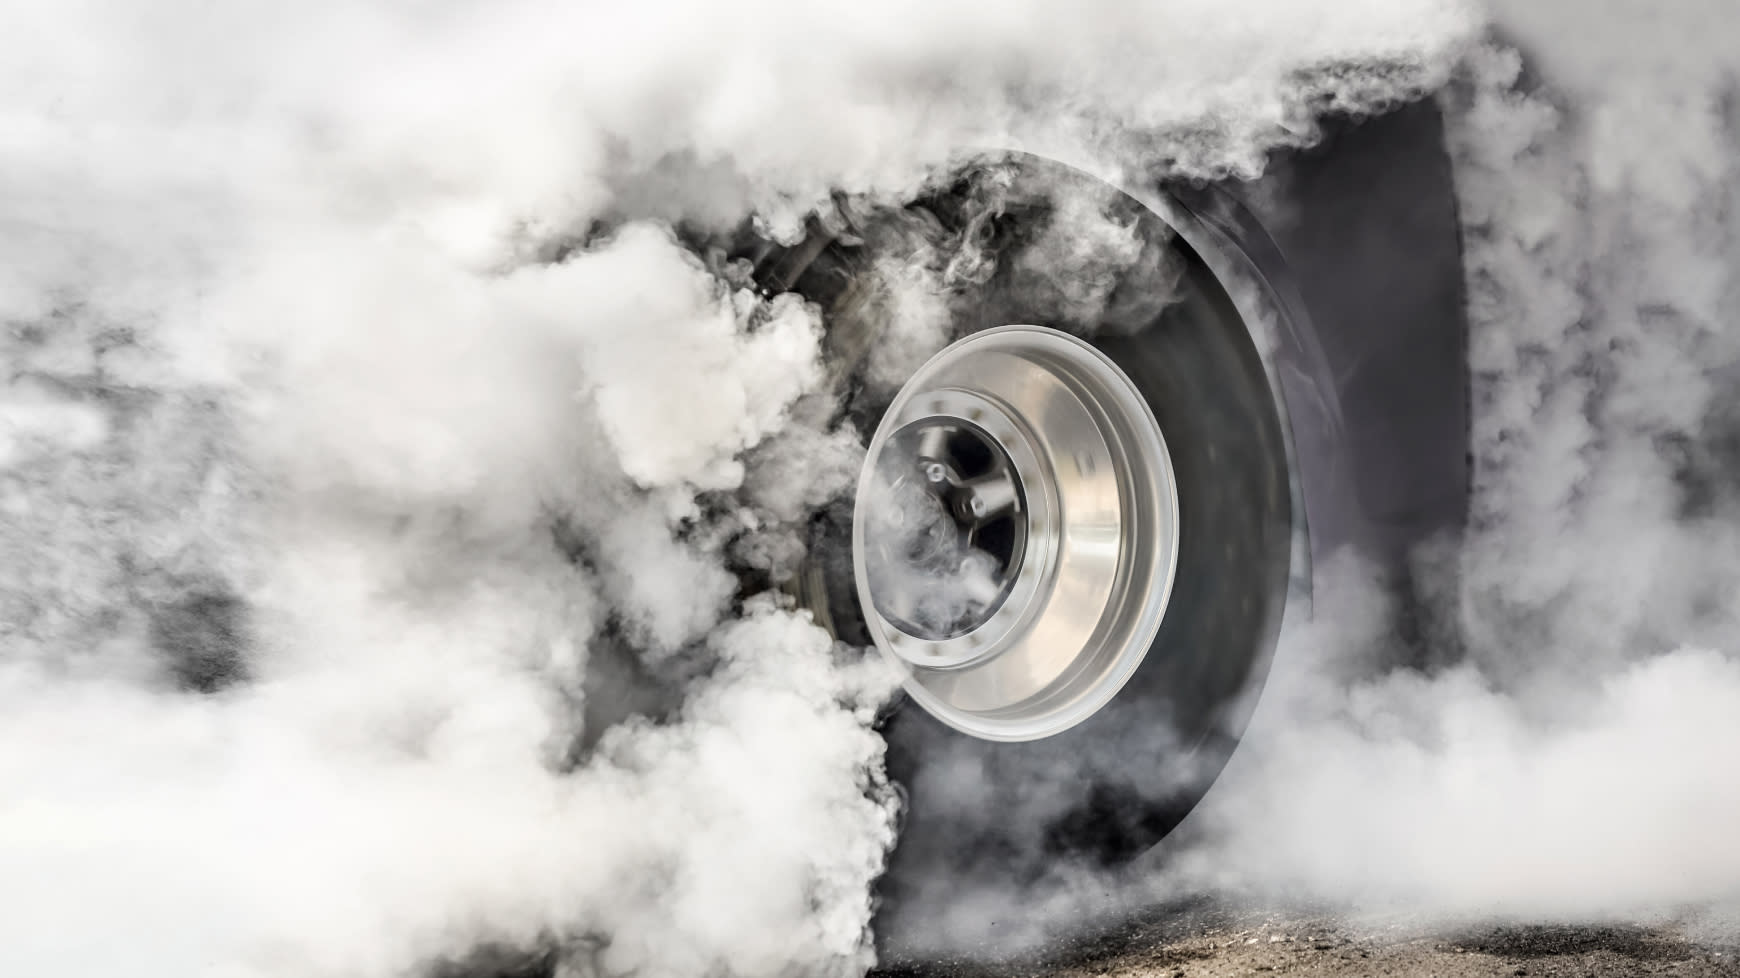 A Drag Racer Doing a Burnout on the Track